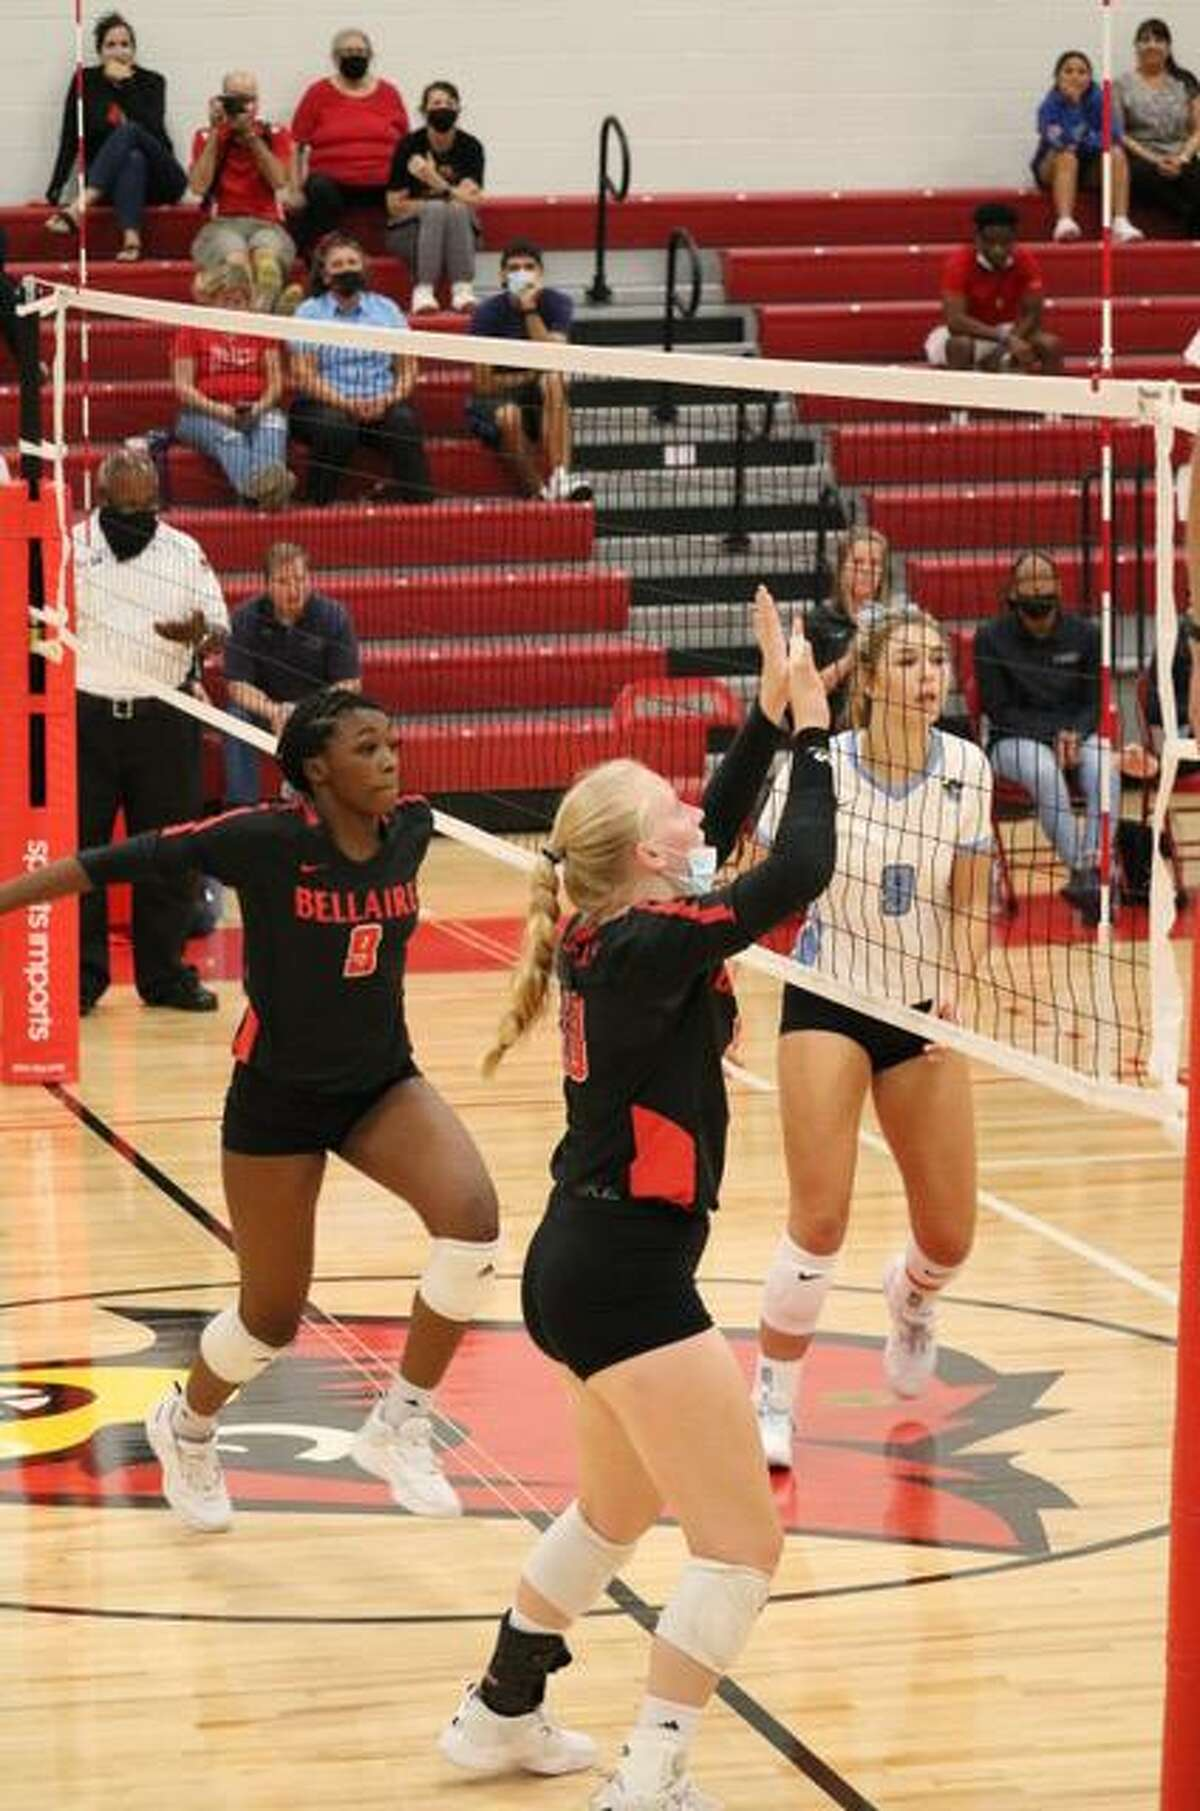 Bellaire volleyball middle hitter Paris Gilmore (left in black) and setter Adeline Lasics (right in black) during a point in the Lady Cardinal's match against Brazoswood on Aug. 31.